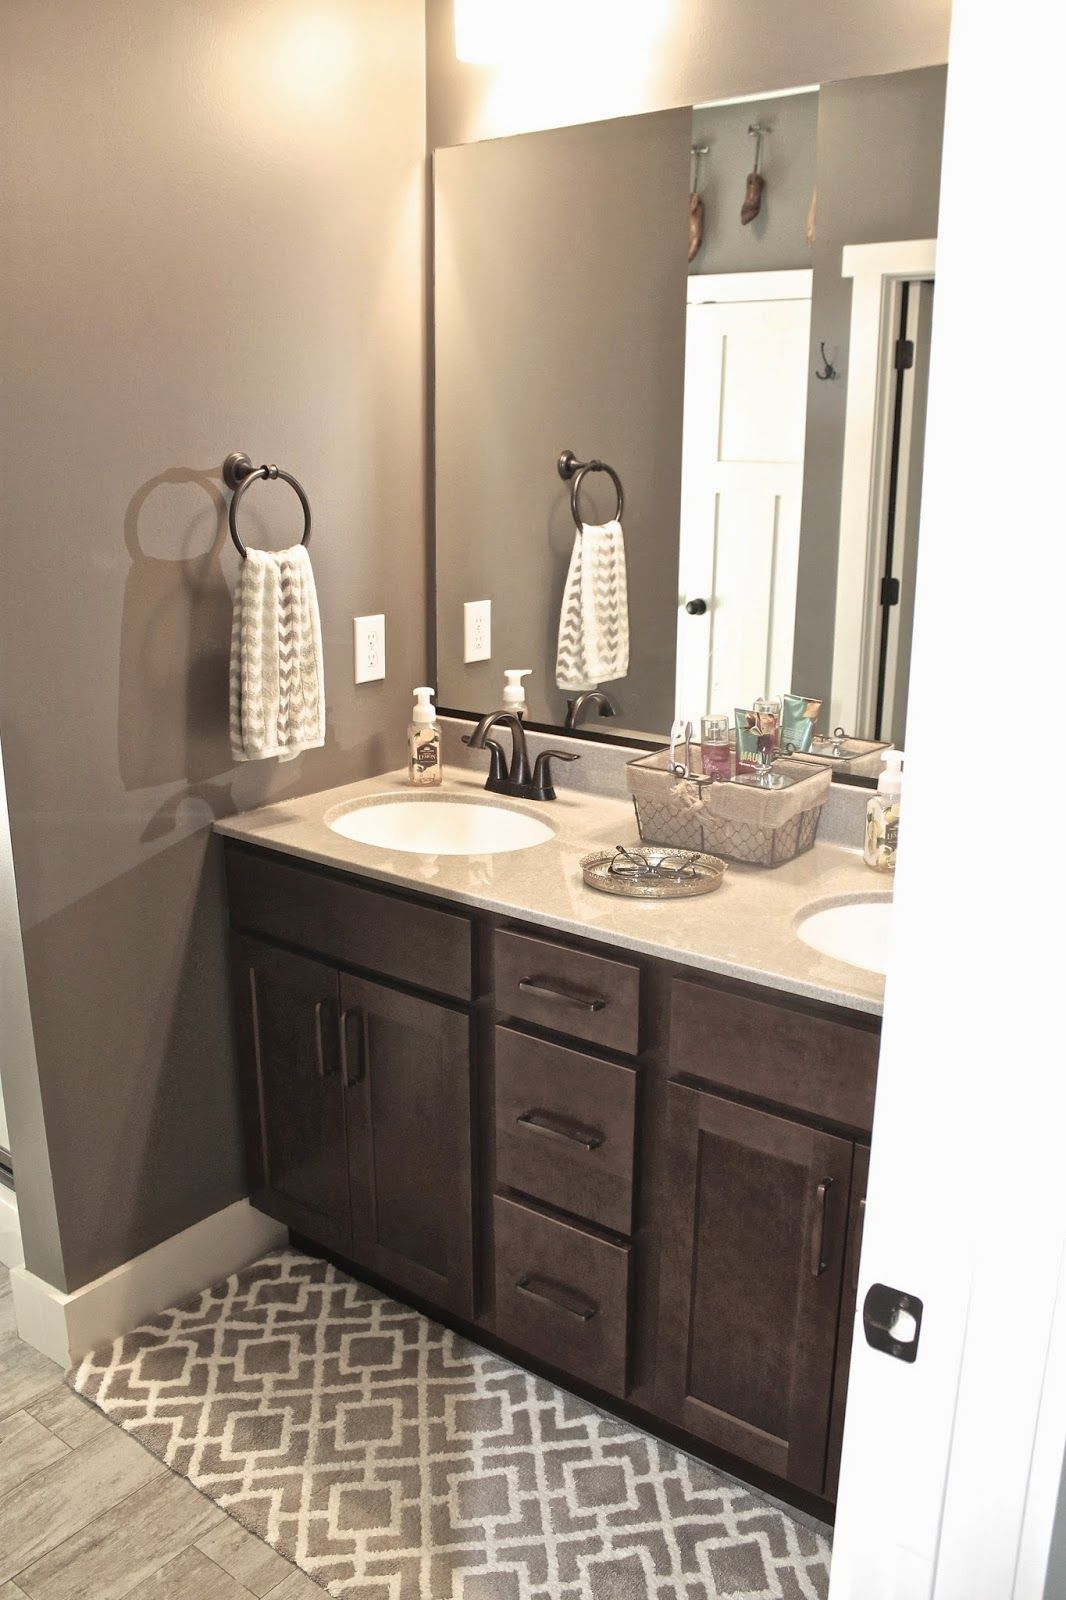 Mink And Dover White Favorite Paint Colors Brown Bathroom Bathroom Color Schemes Painting Bathroom